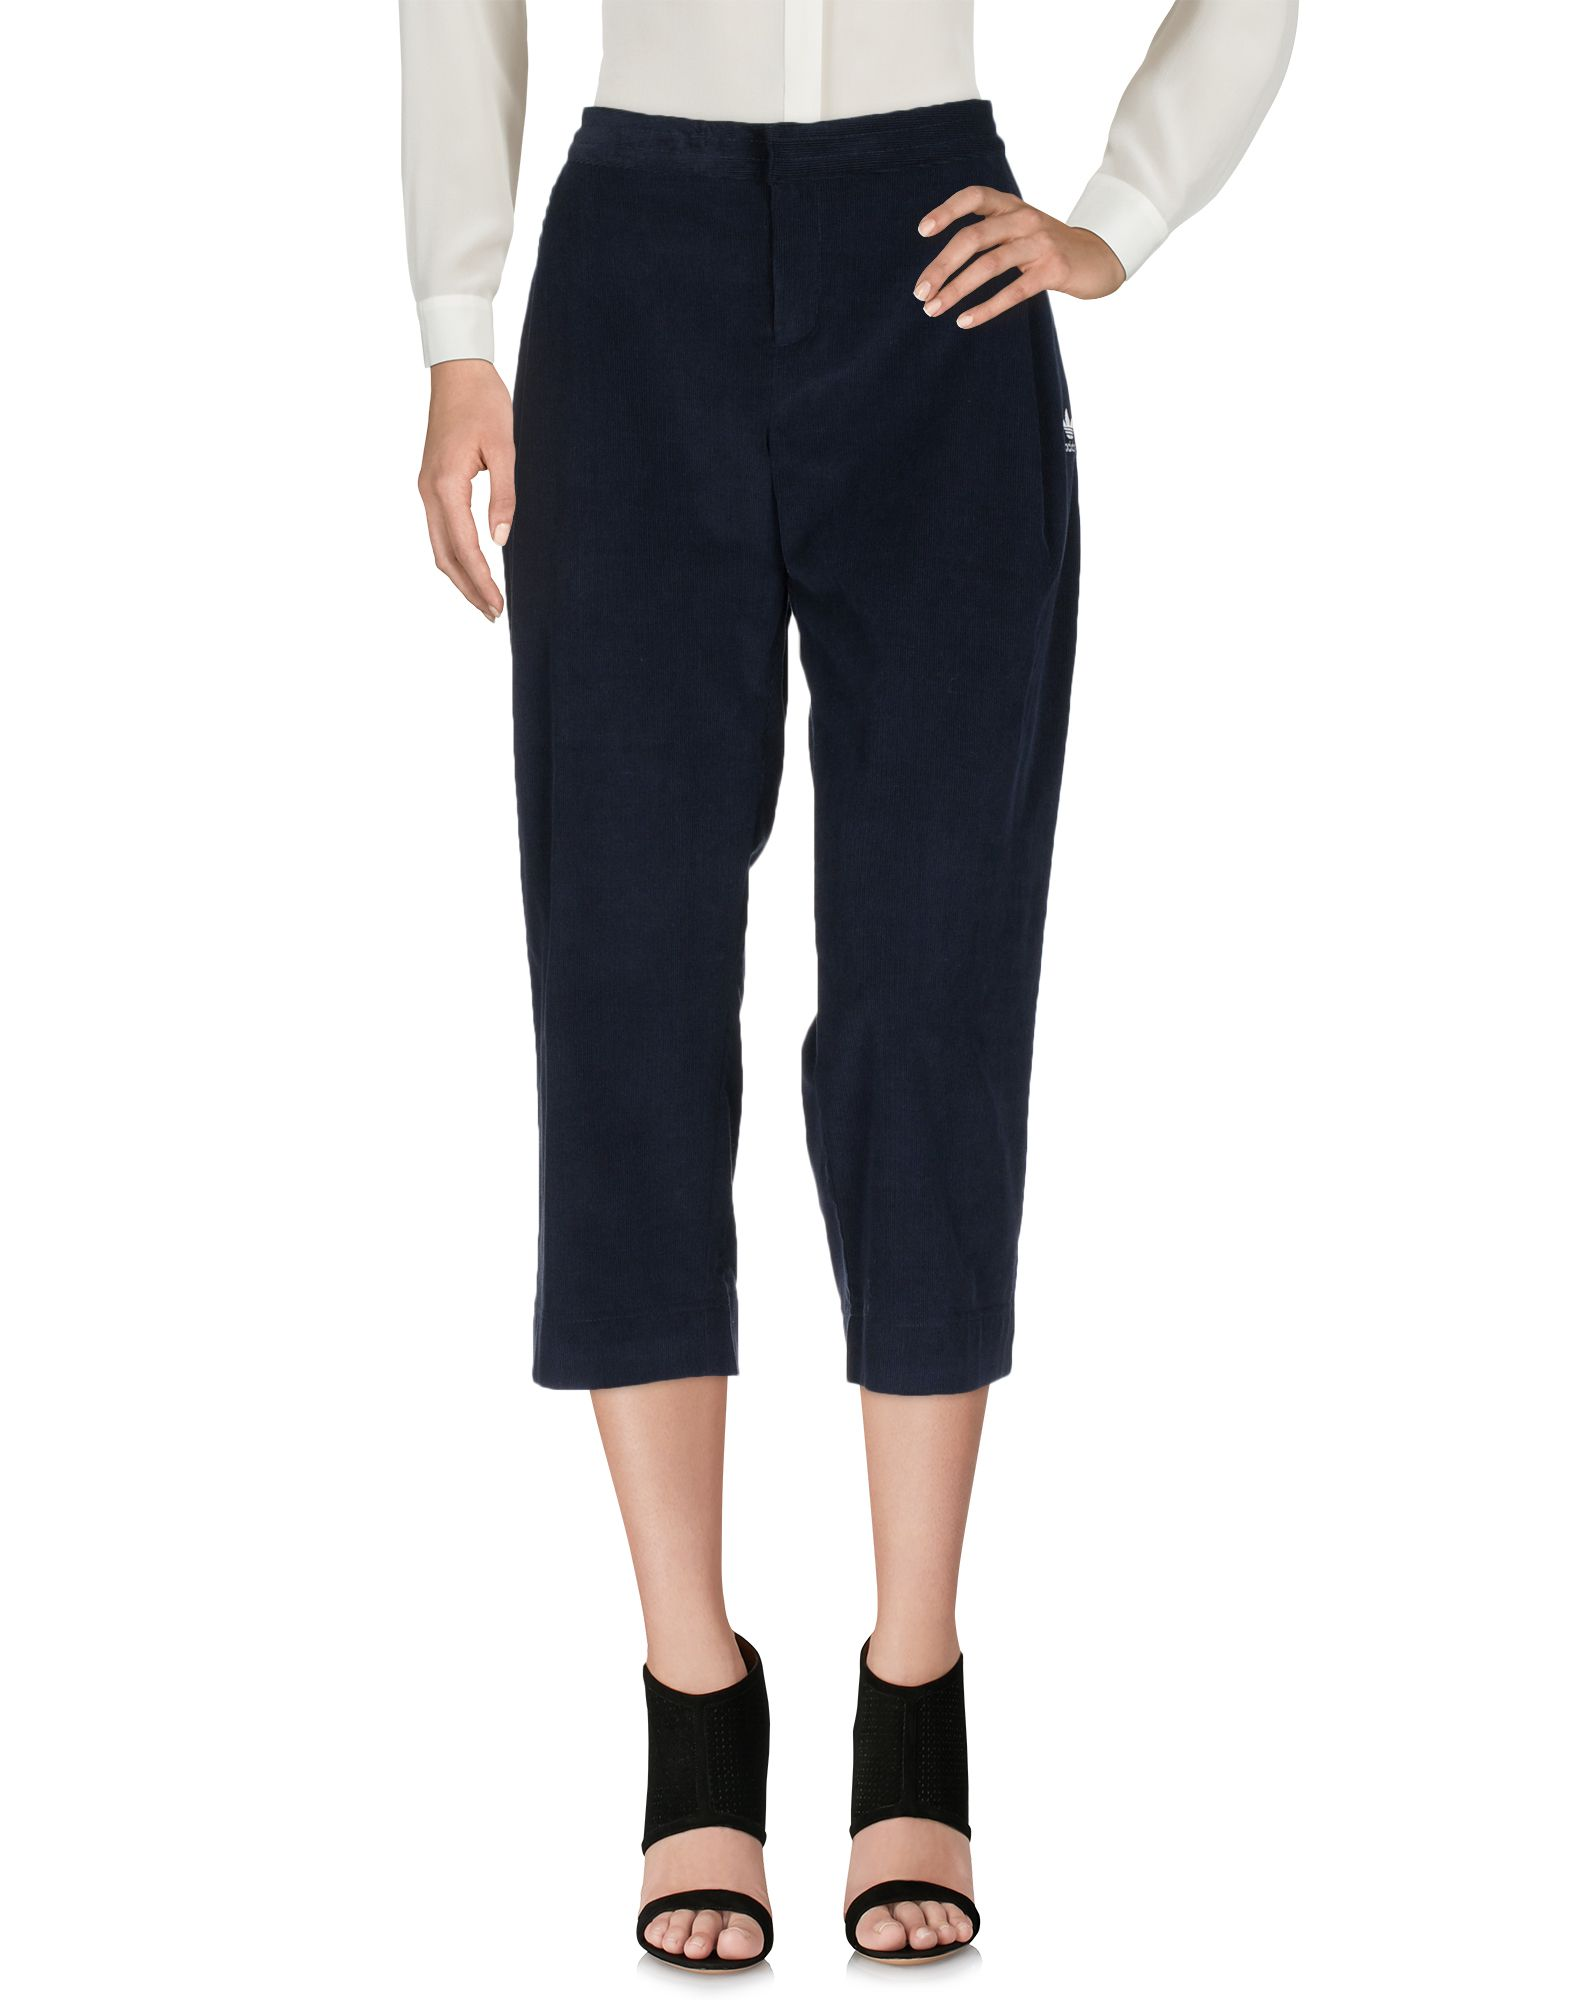 a36877fb2f6c Adidas Originals Cropped Pants   Culottes In Dark Blue